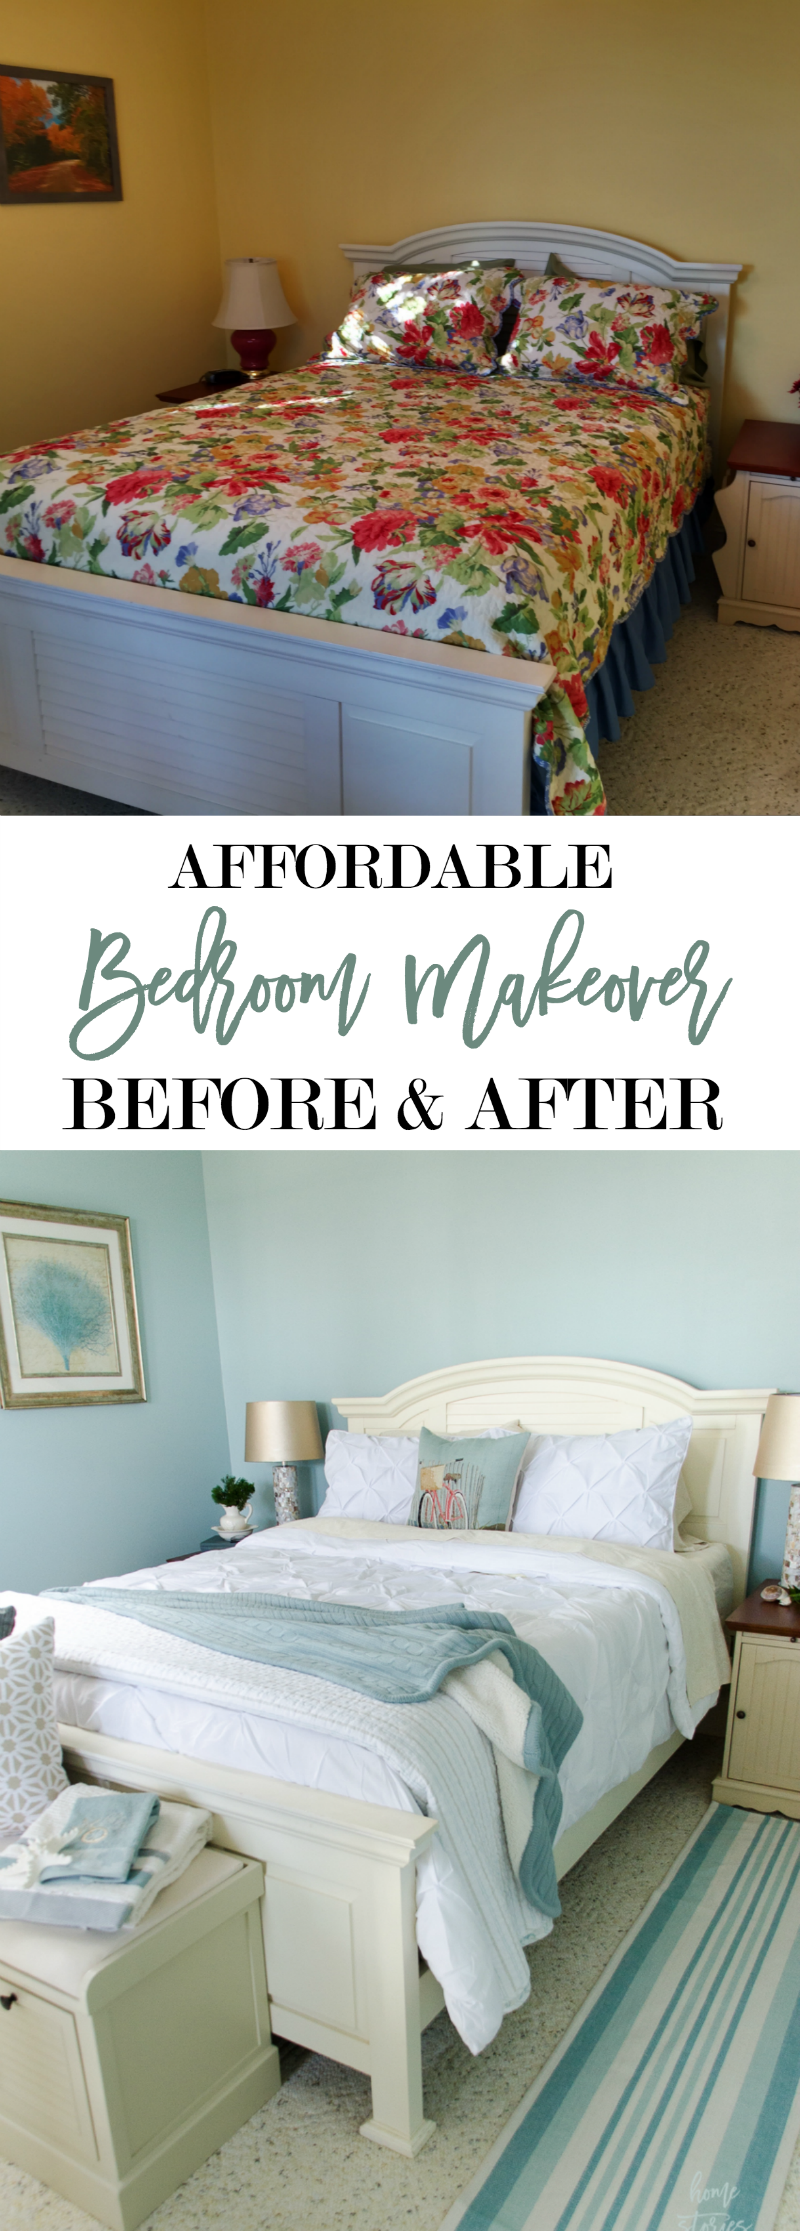 bedroom makeovers before and after bedroom makeover before and after 18180